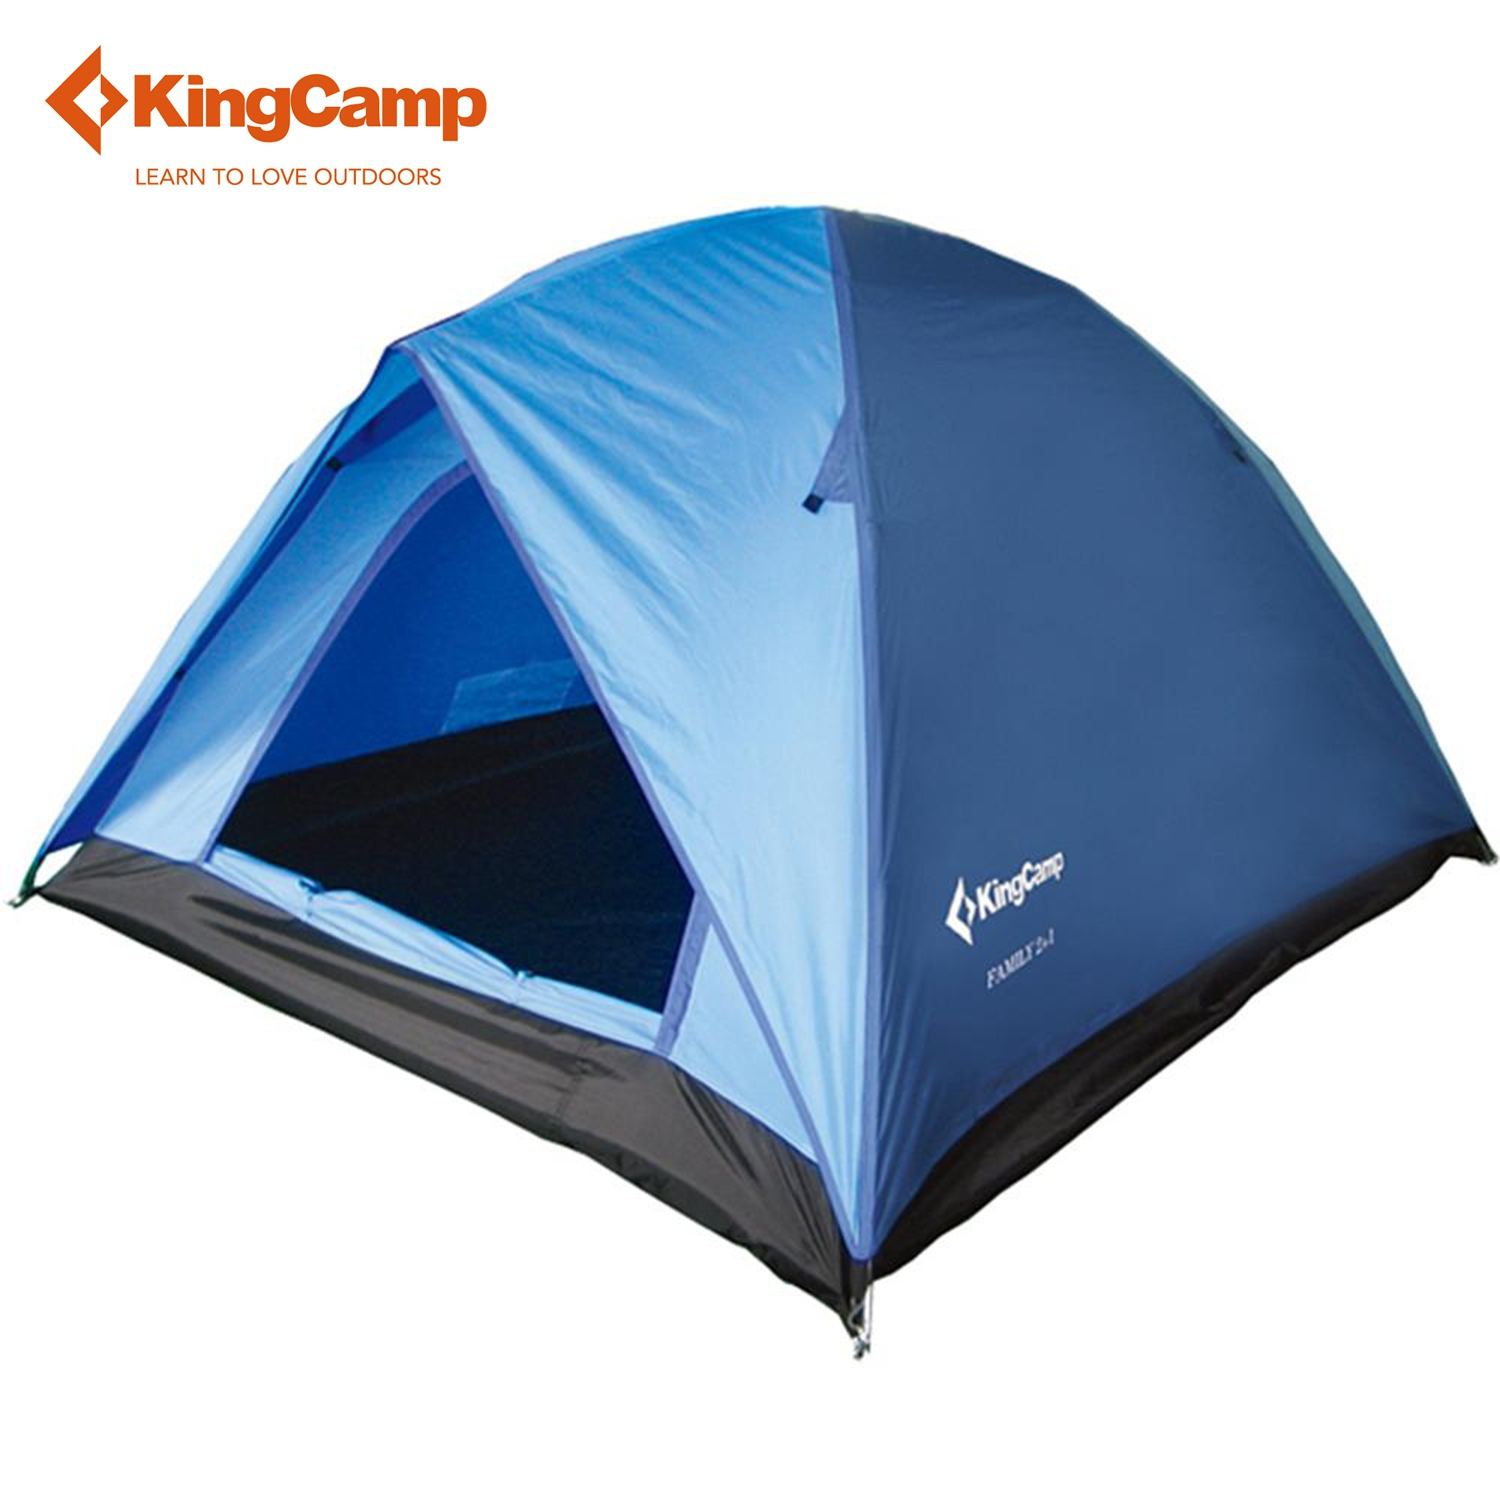 KingCamp 2 Person Ultralight Camping Tent Double-layers 3 Season Breathable Waterproof Camping Hiking Tent UV Protection цена